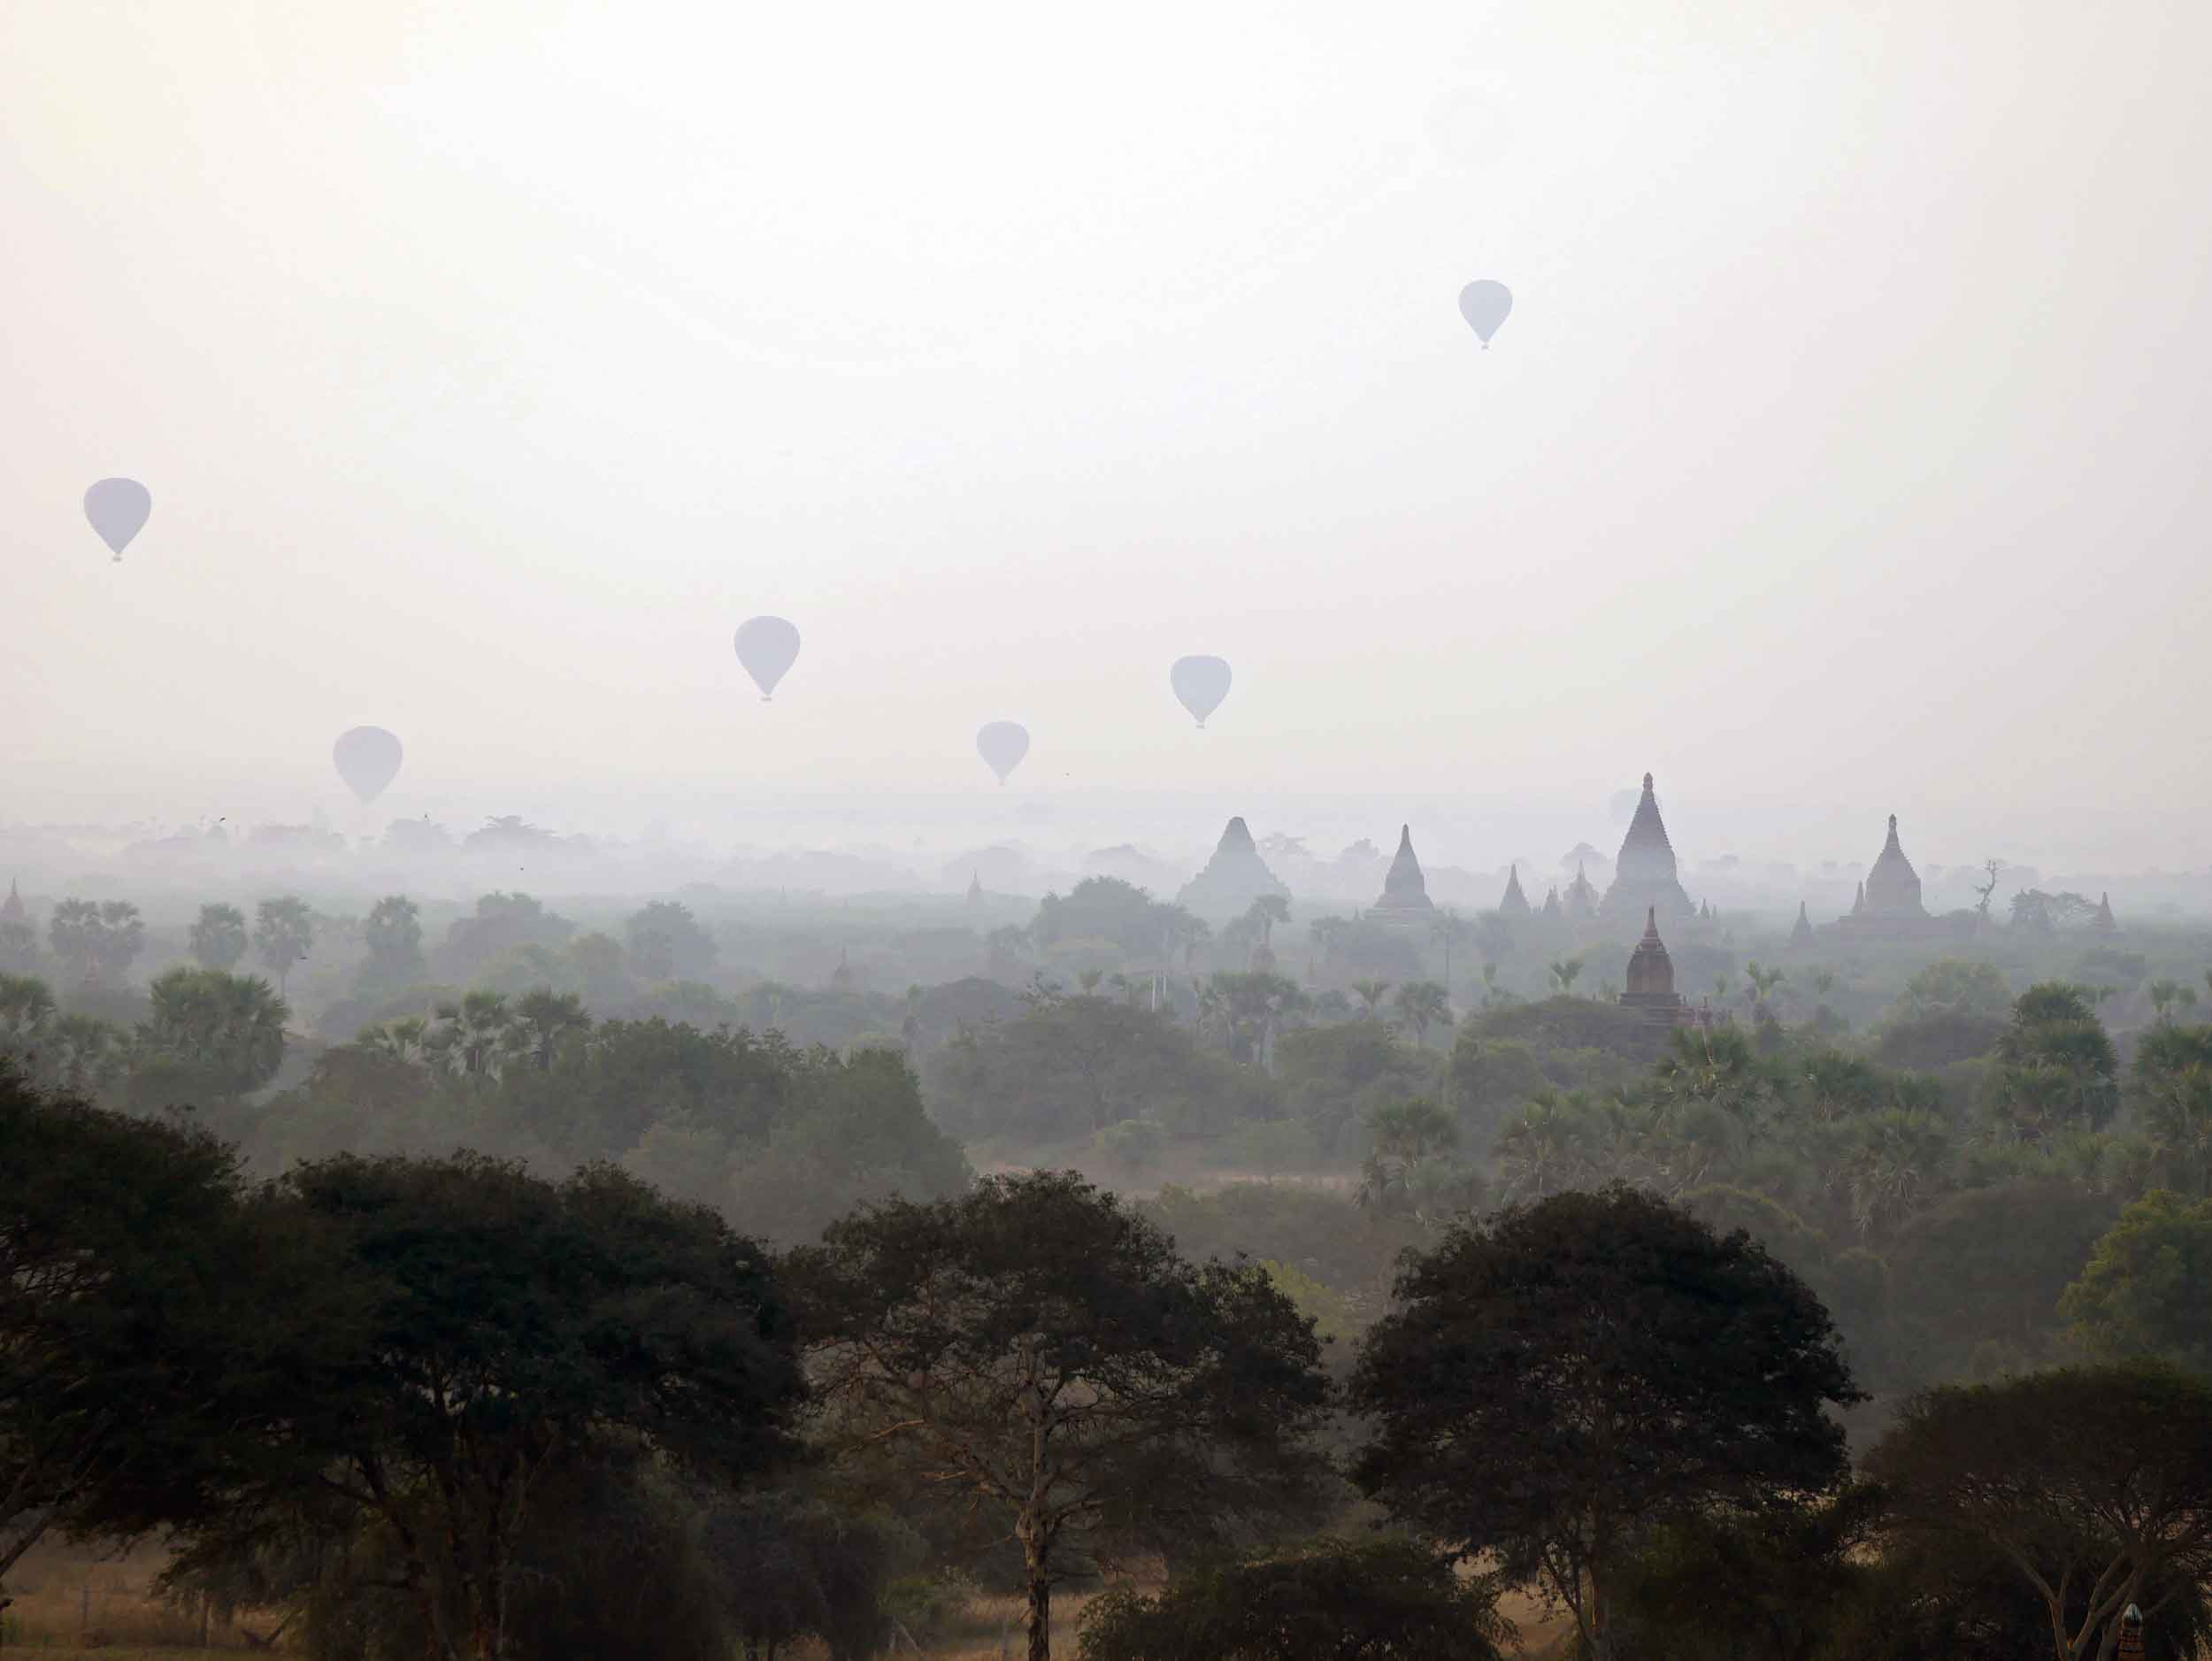 For a unique experience, some choose to rise with the sun in a hot air balloon (Feb 15).